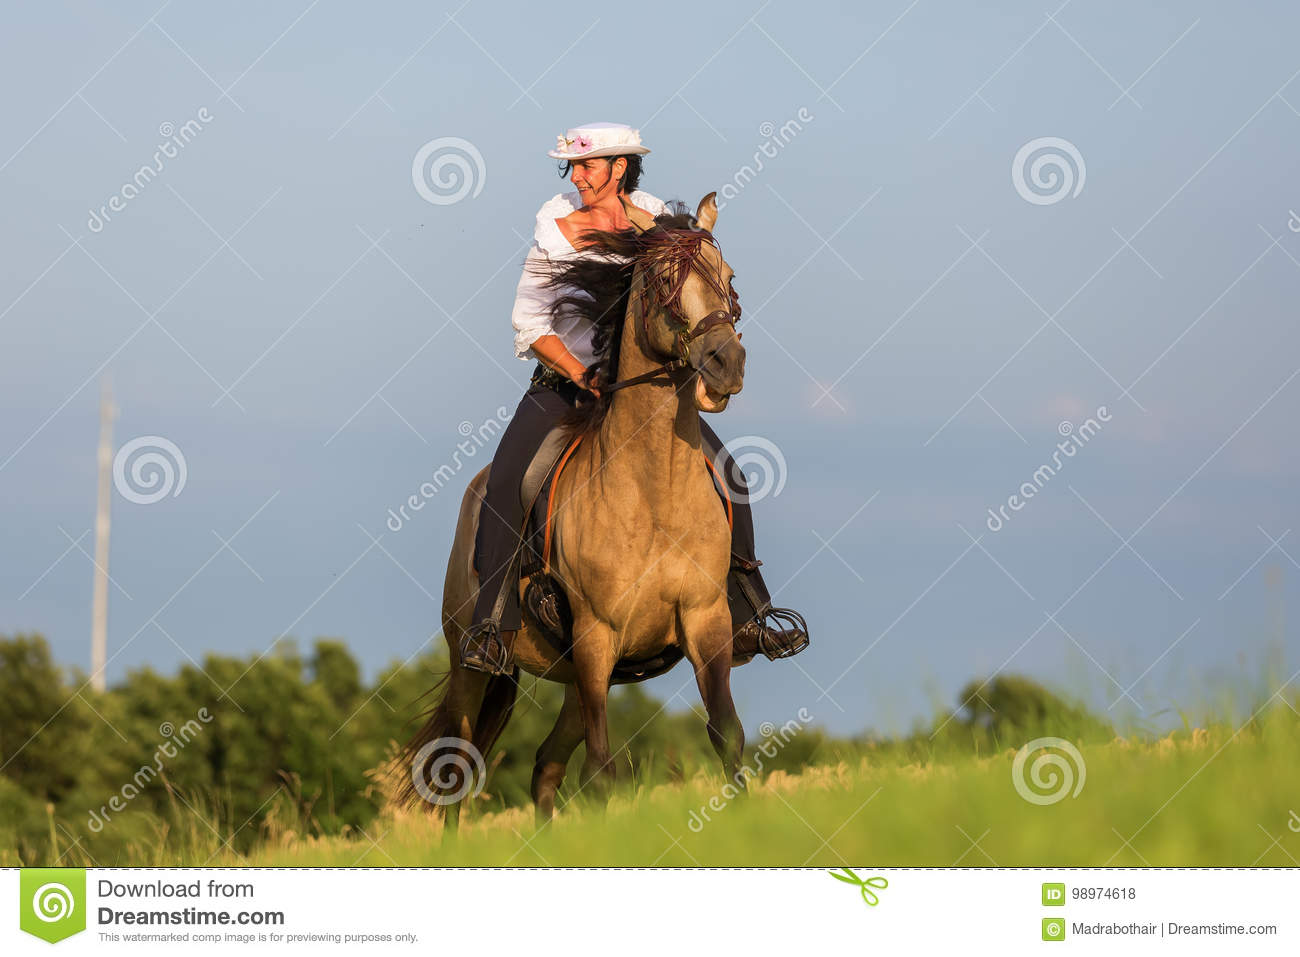 mature woman riding an andalusian horse stock photo - image of horse